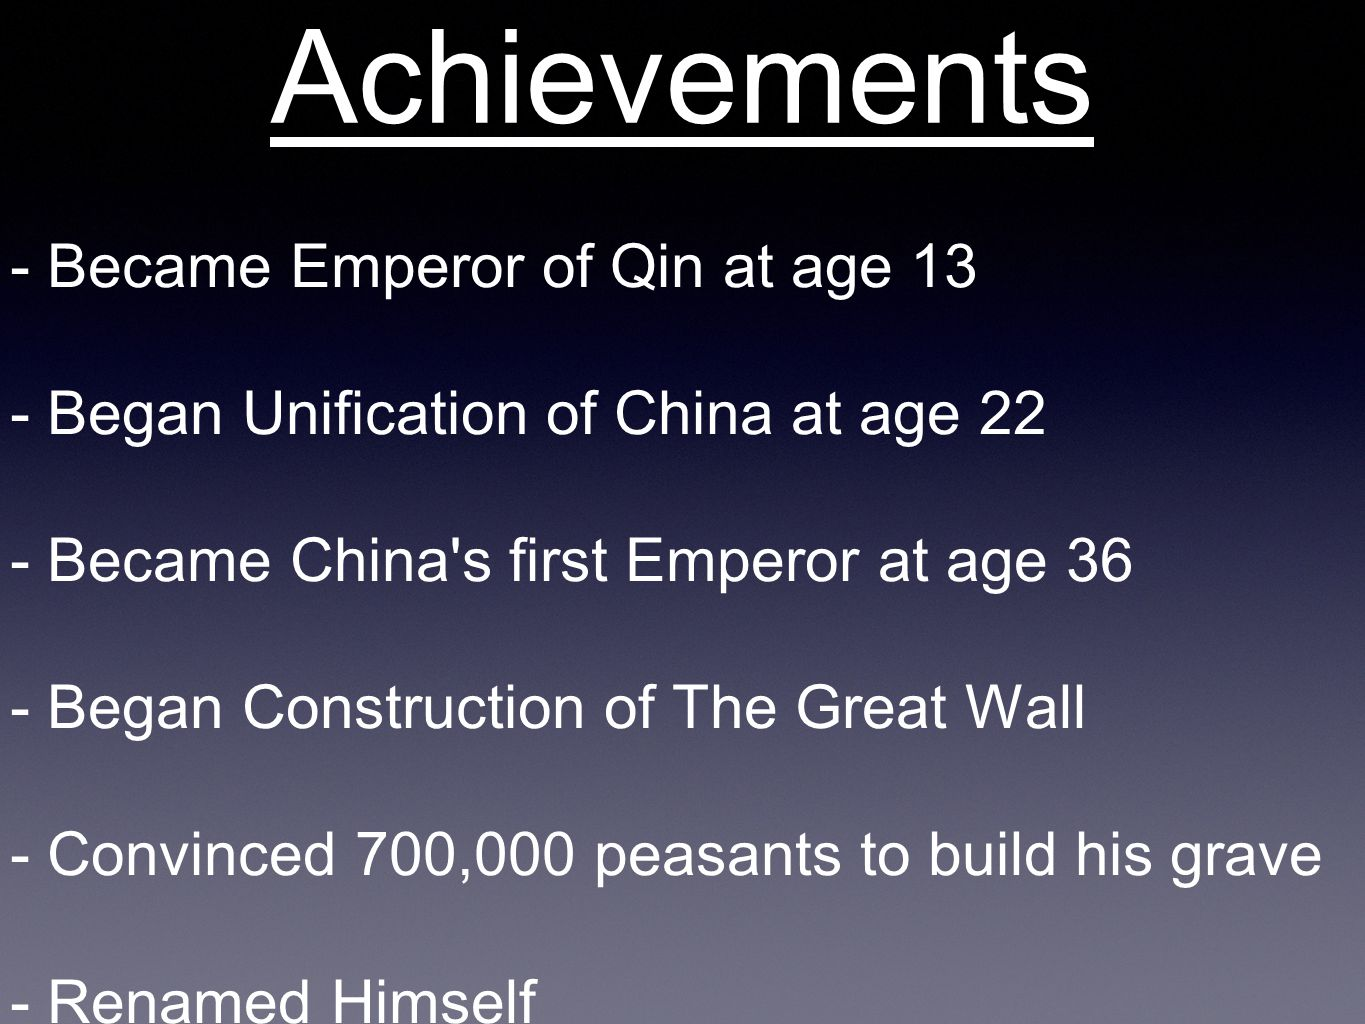 Achievements - Became Emperor of Qin at age 13 - Began Unification of China at age 22 - Became China s first Emperor at age 36 - Began Construction of The Great Wall - Convinced 700,000 peasants to build his grave - Renamed Himself